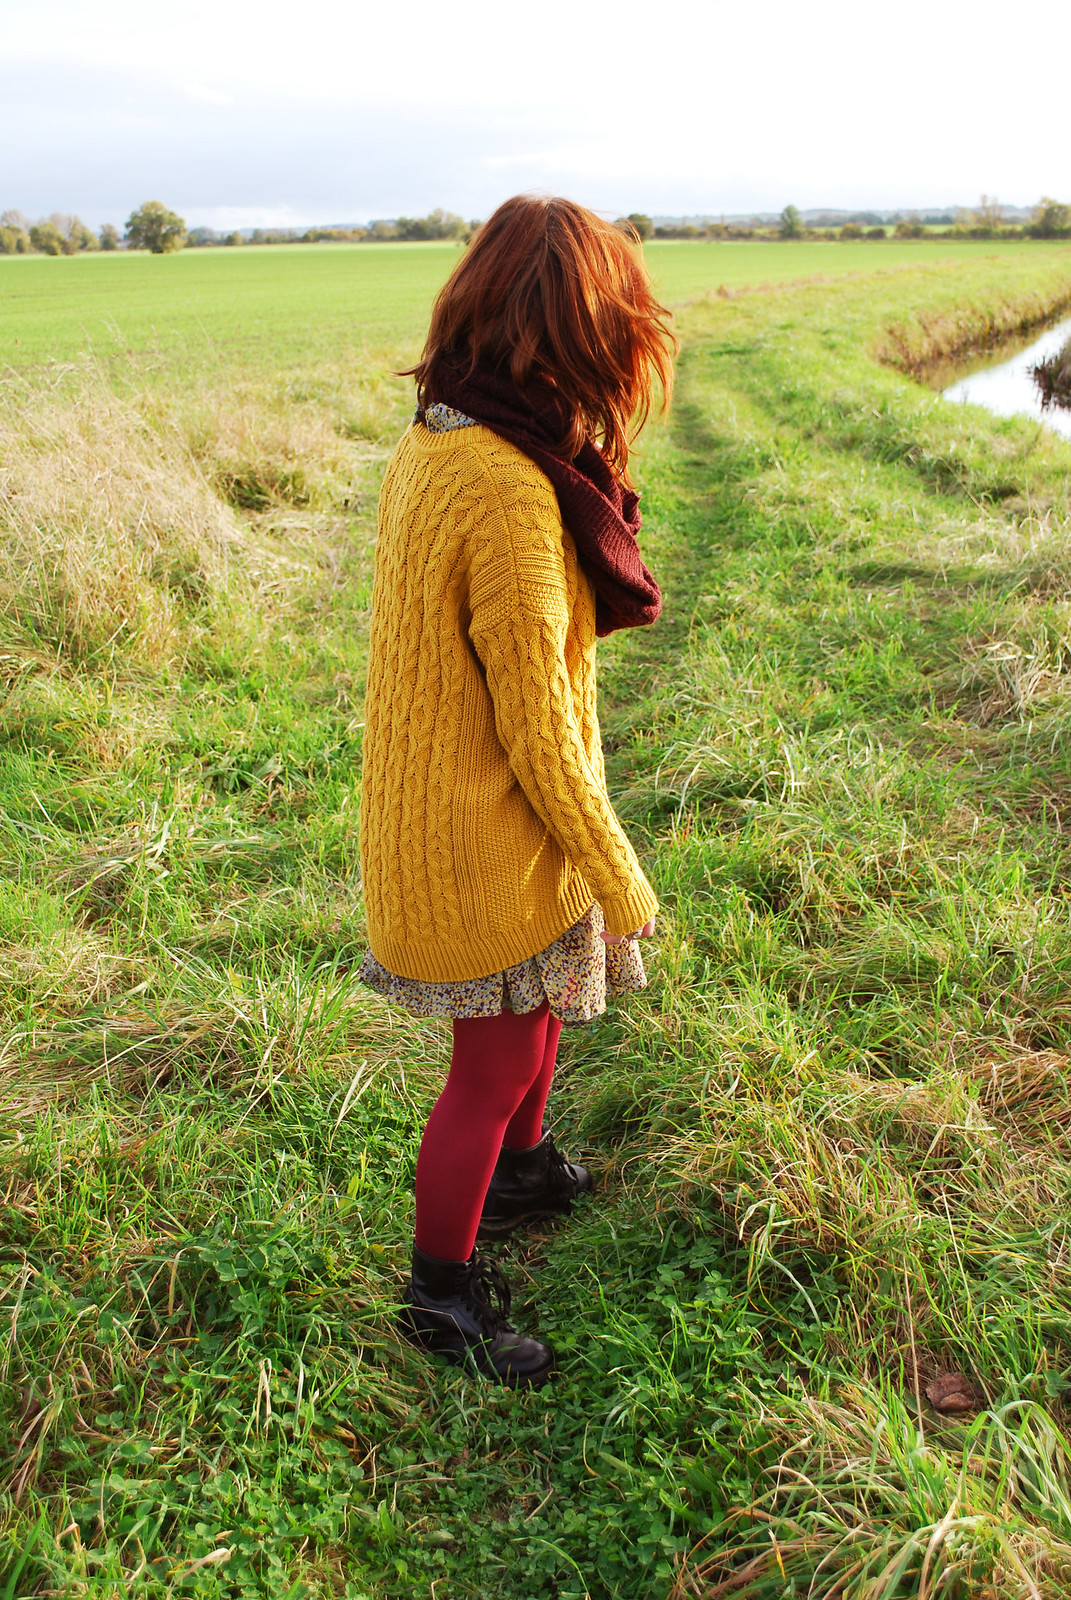 Autumn knitwear fashion